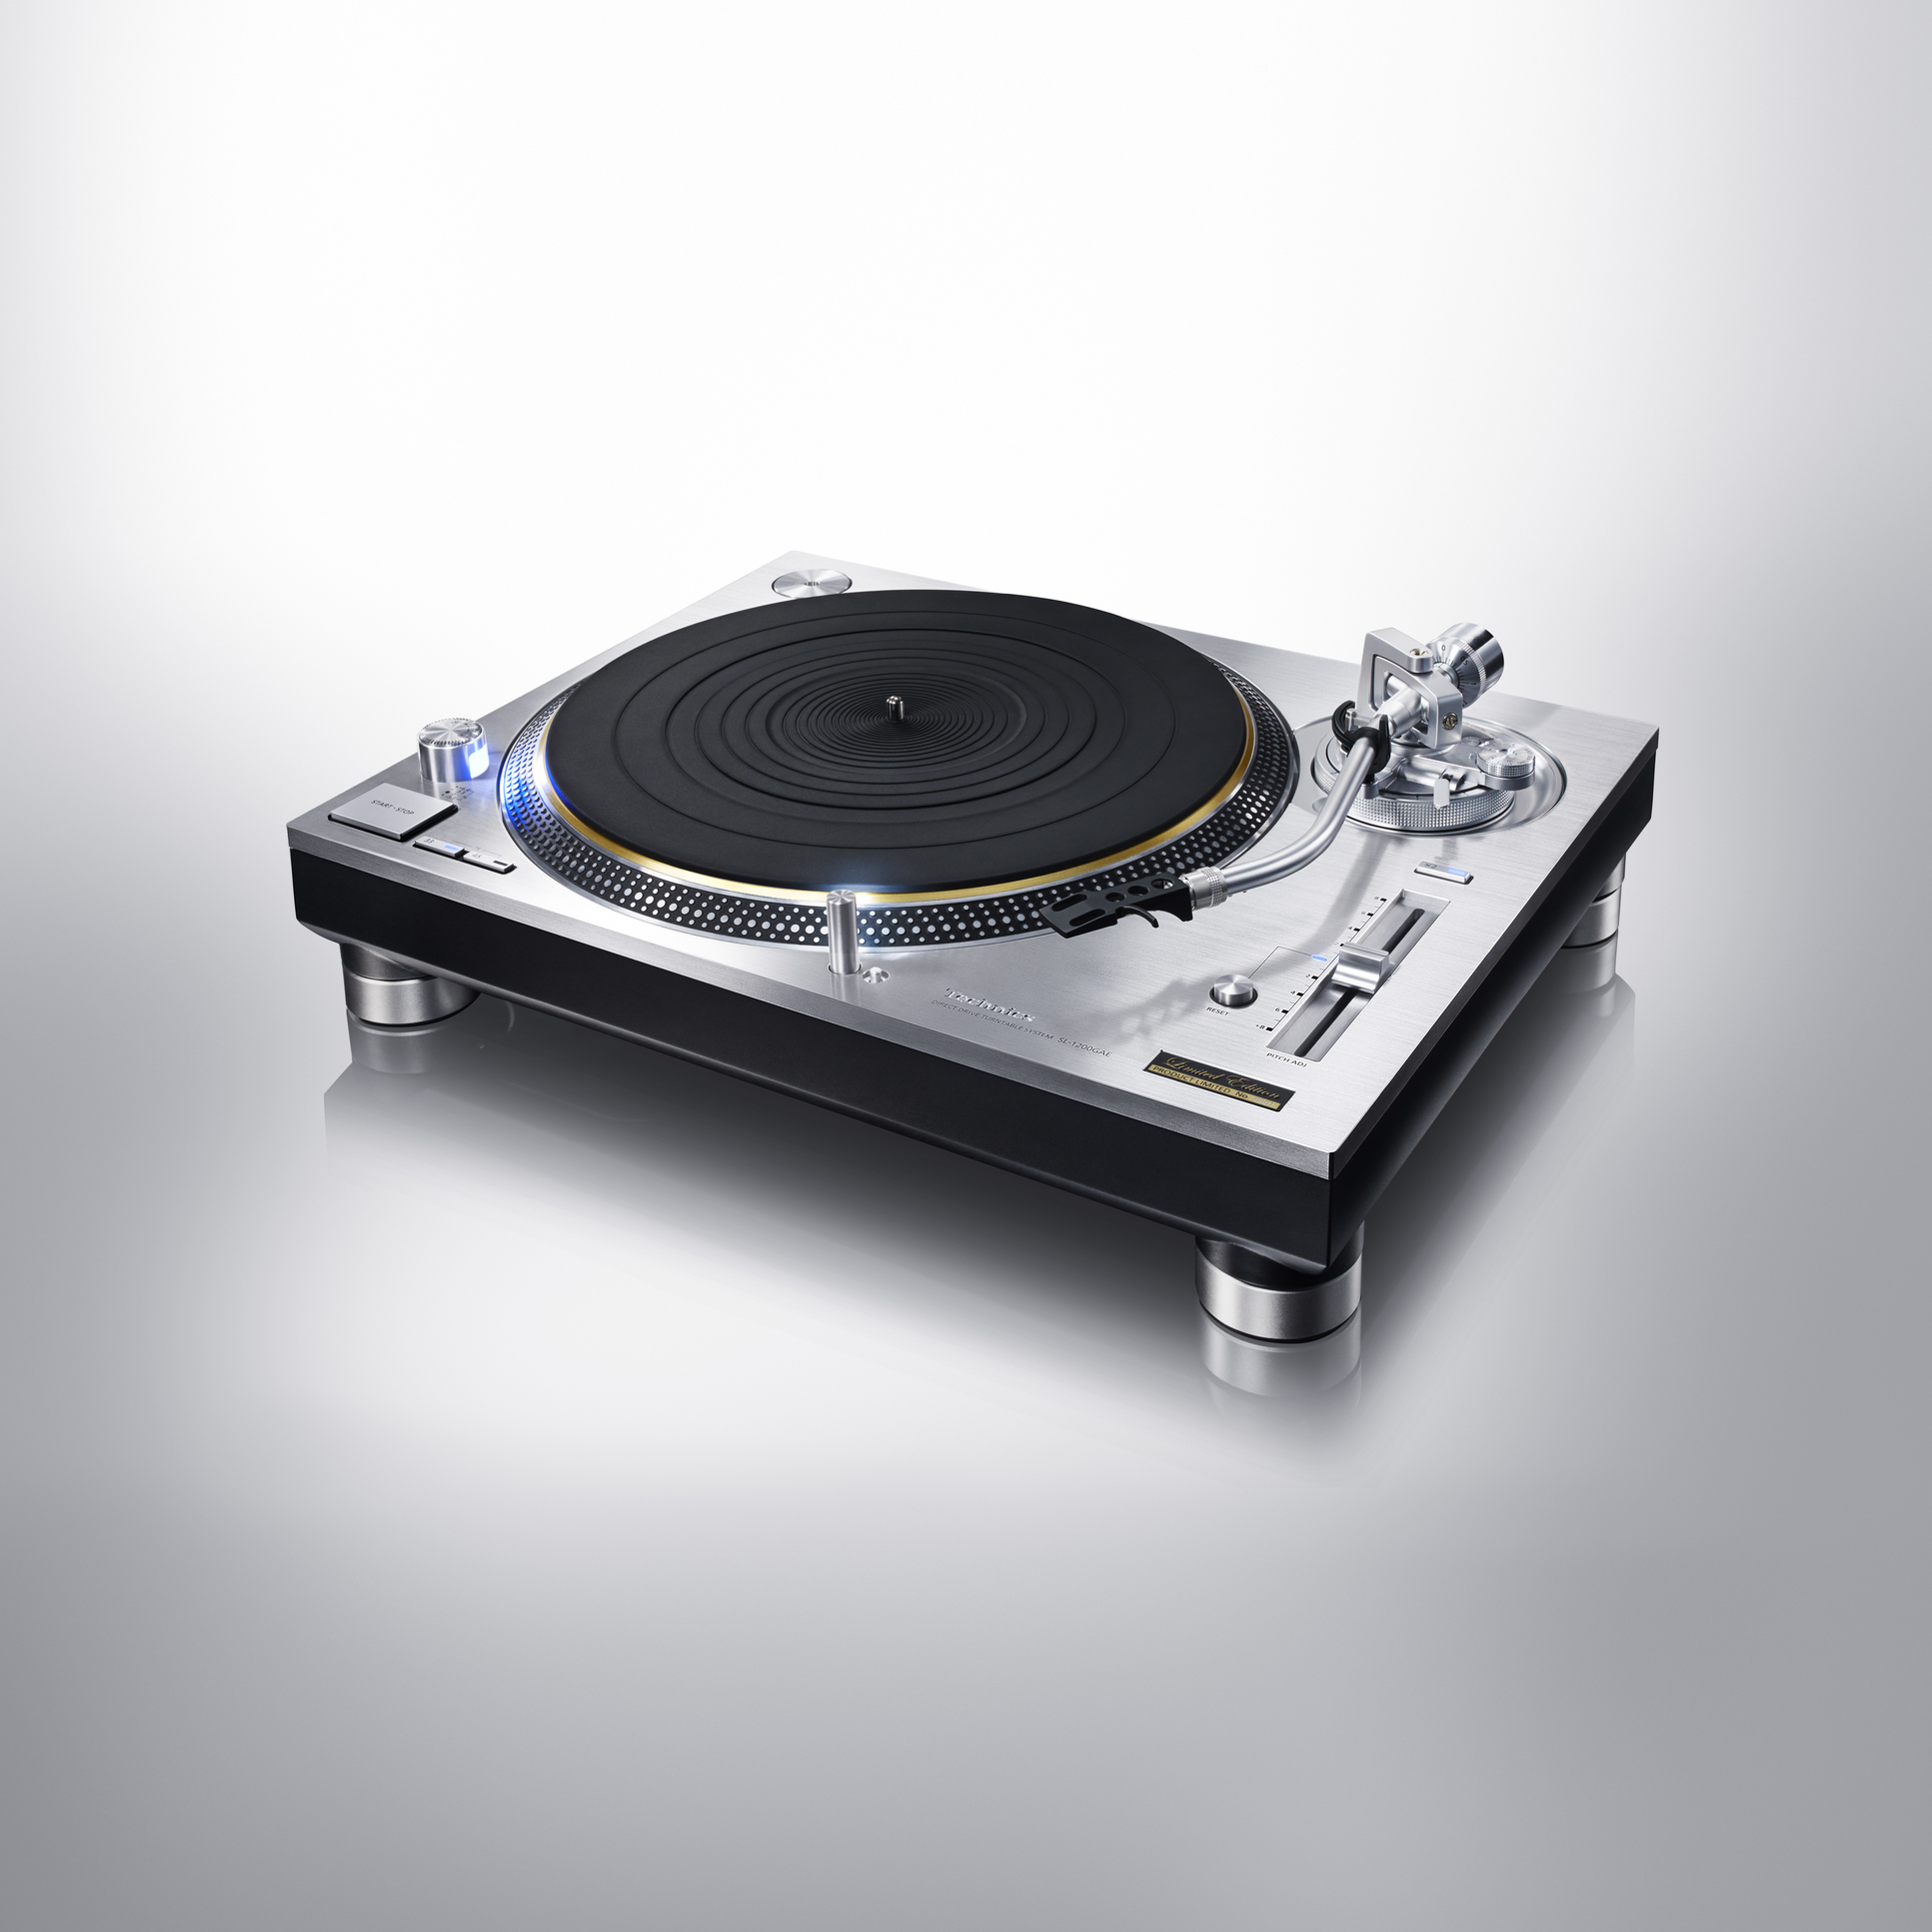 Technics turntable SL-1200